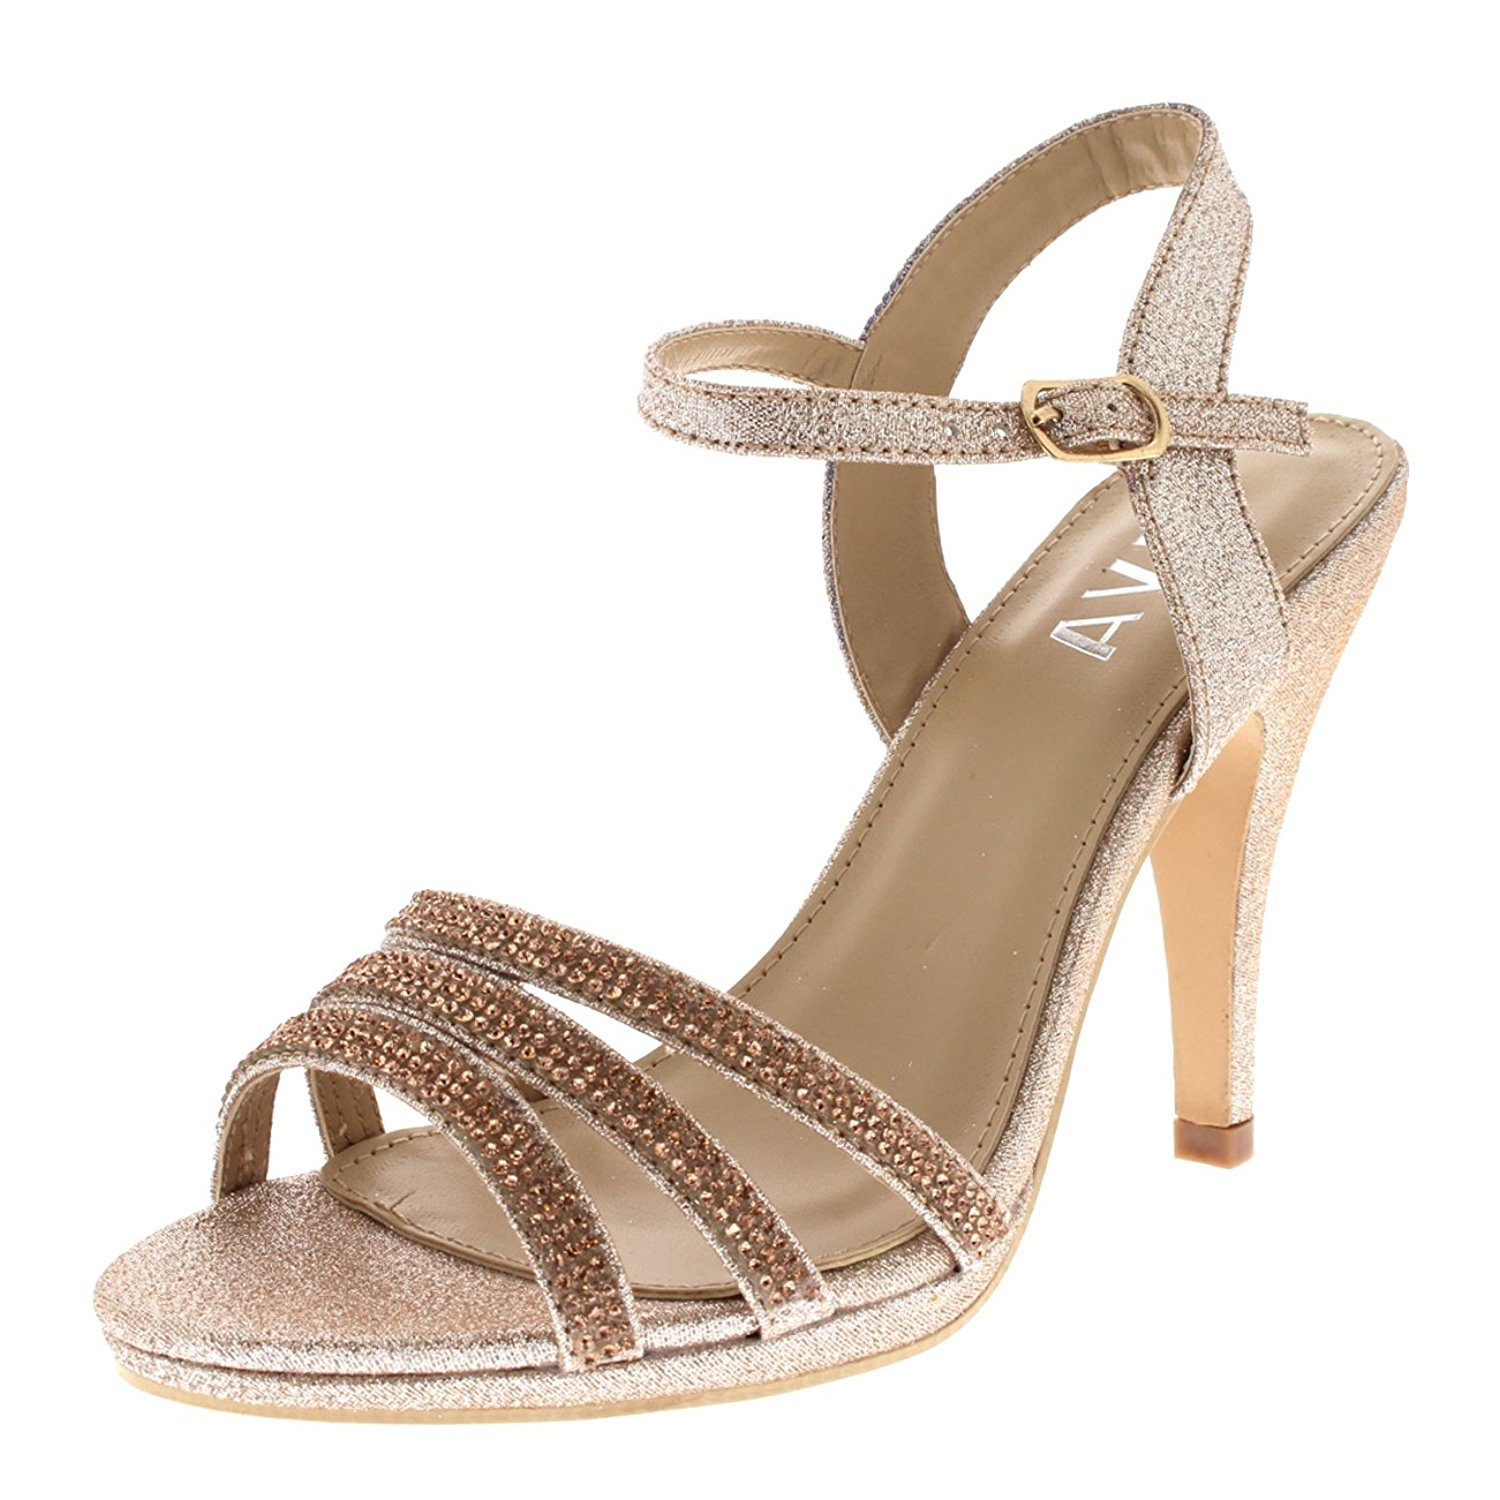 Viva Womens Diamante Mid Heel Ankle Strap Wedding Party Evening Party Sandals Shoes